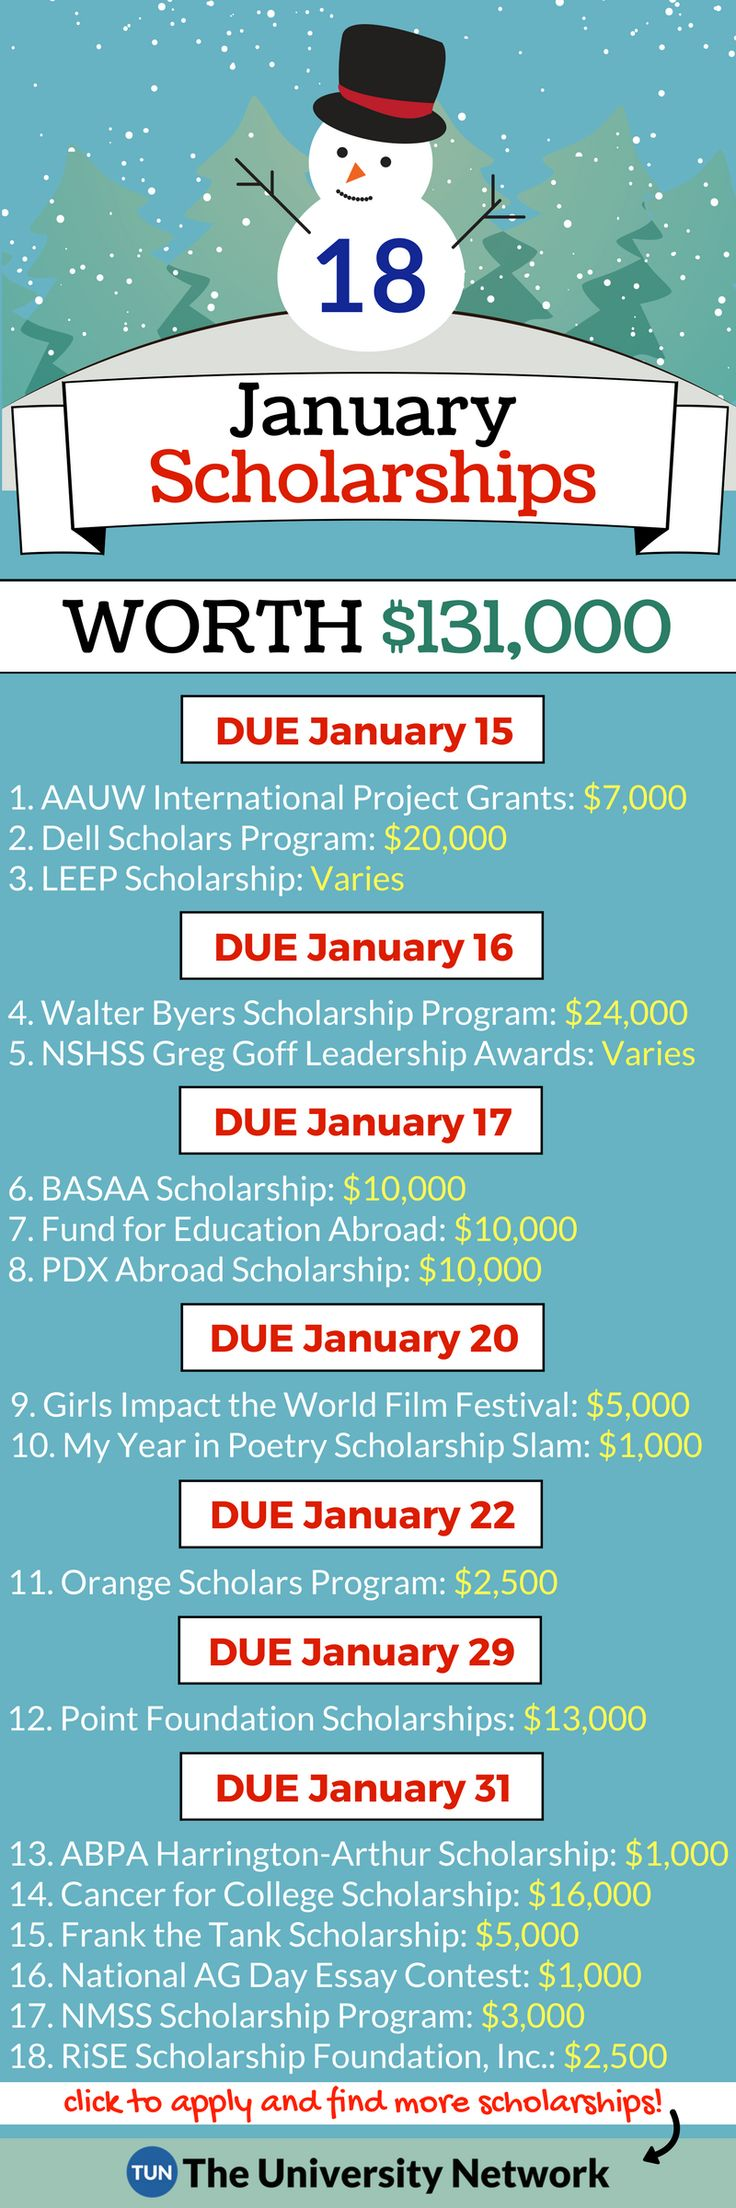 Here is a selected list of January 2018 Scholarships.